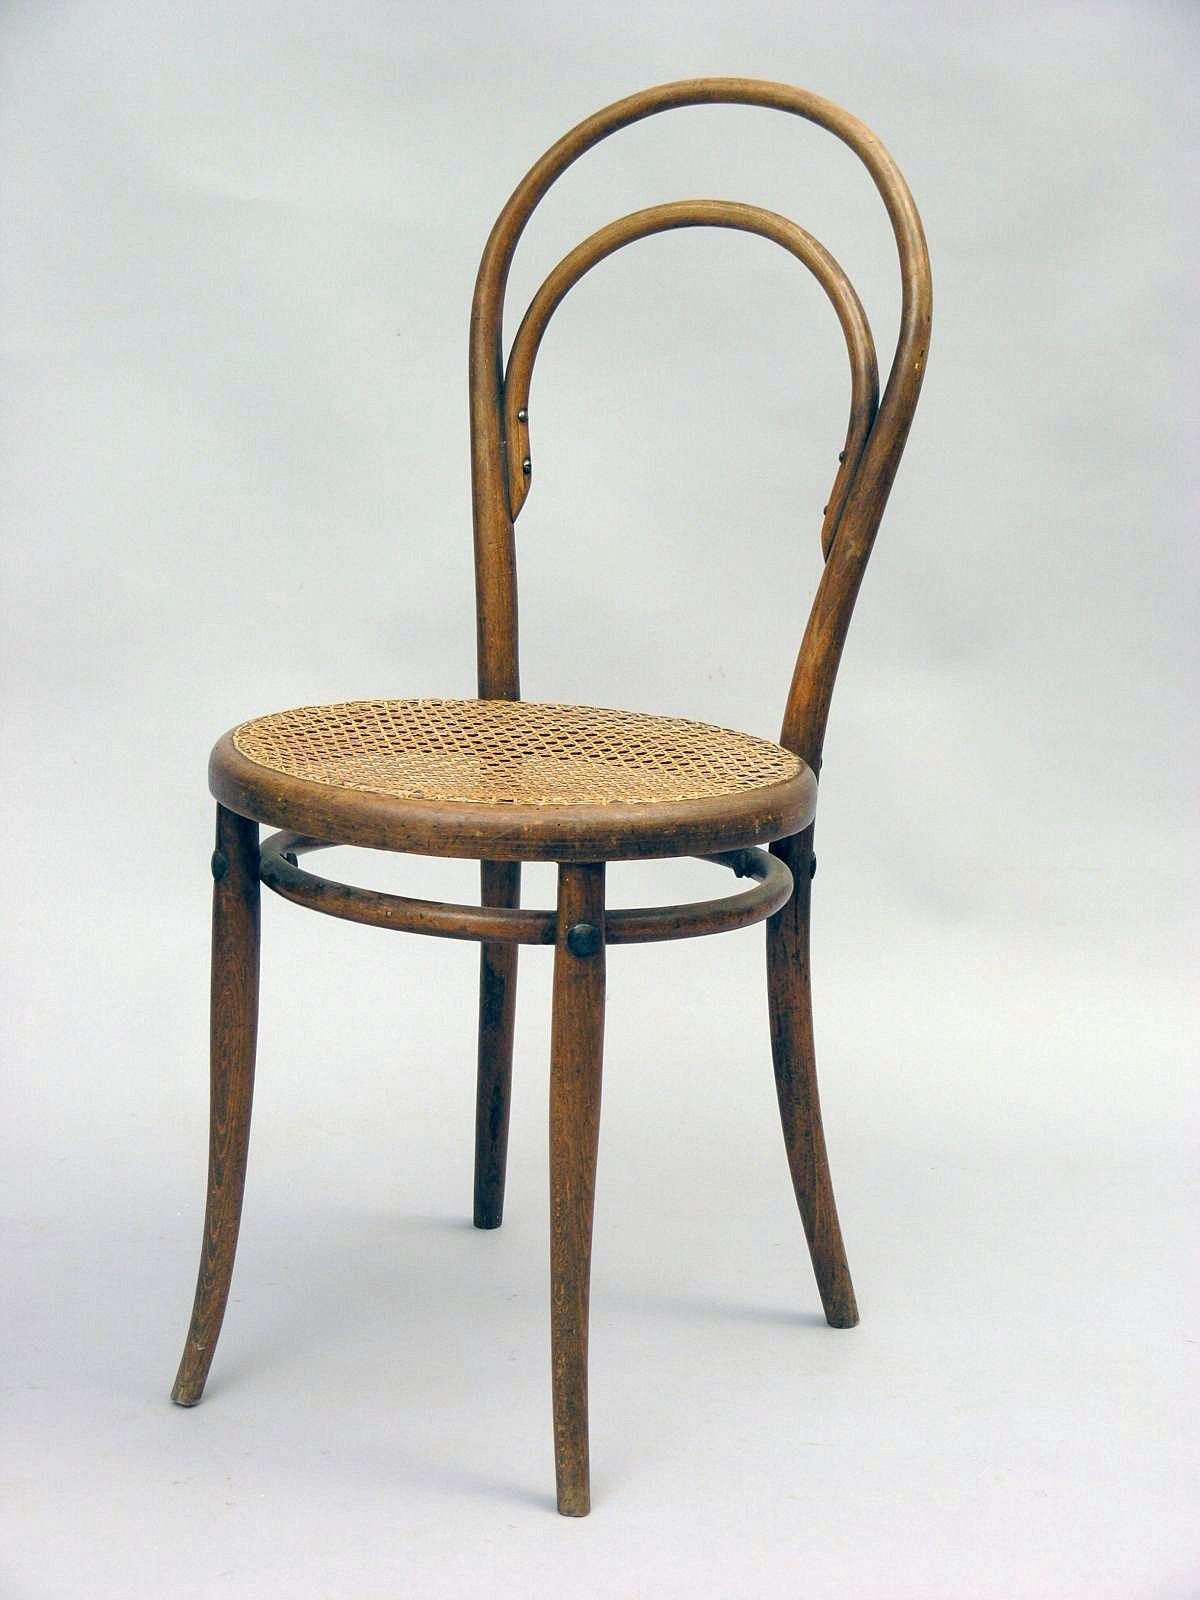 Wooden chairs design classics - The Chair Of Chairs Why This 1859 Chair Is So Important Today